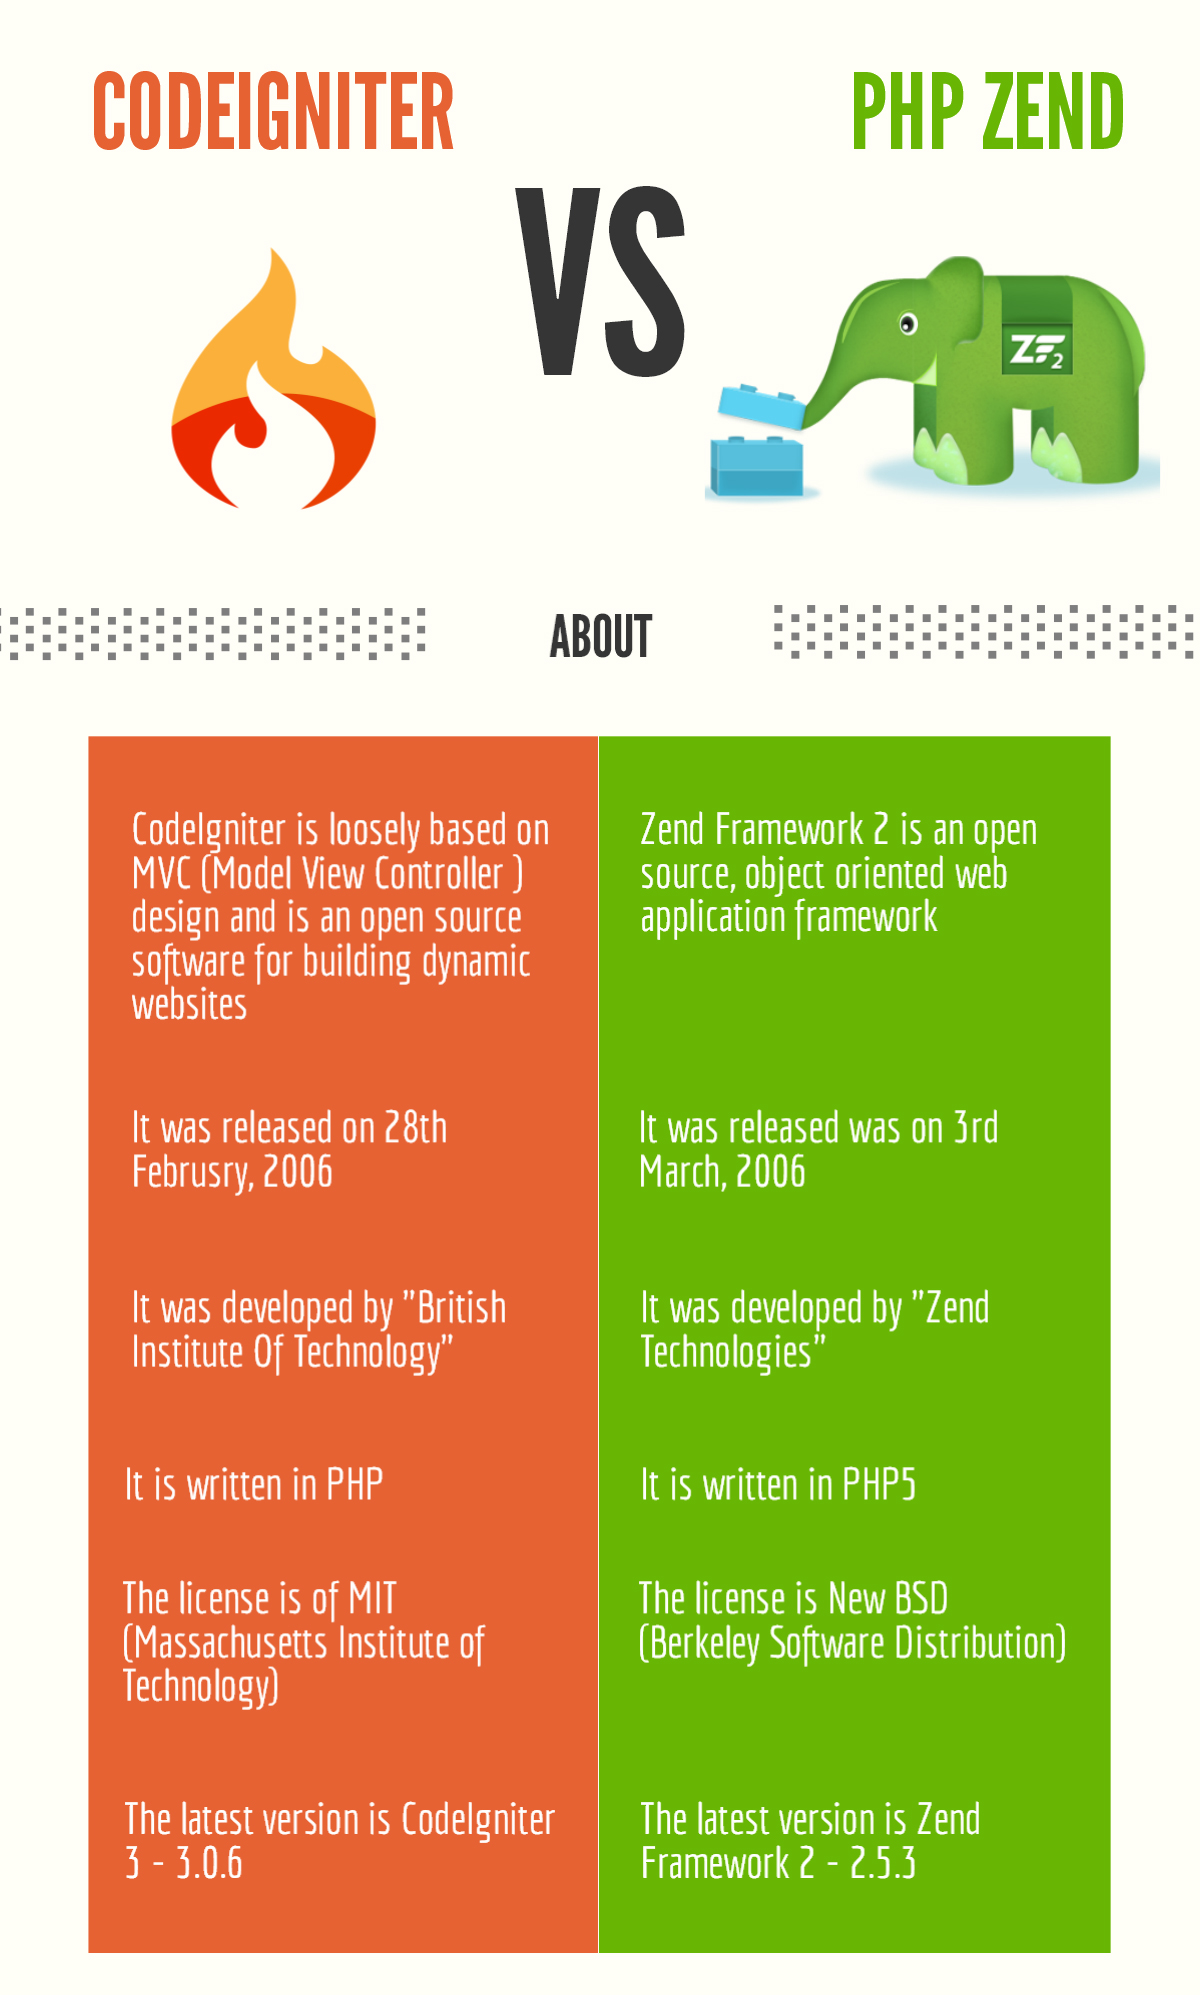 2 Best PHP Frameworks : CodeIgniter and PHP Zend